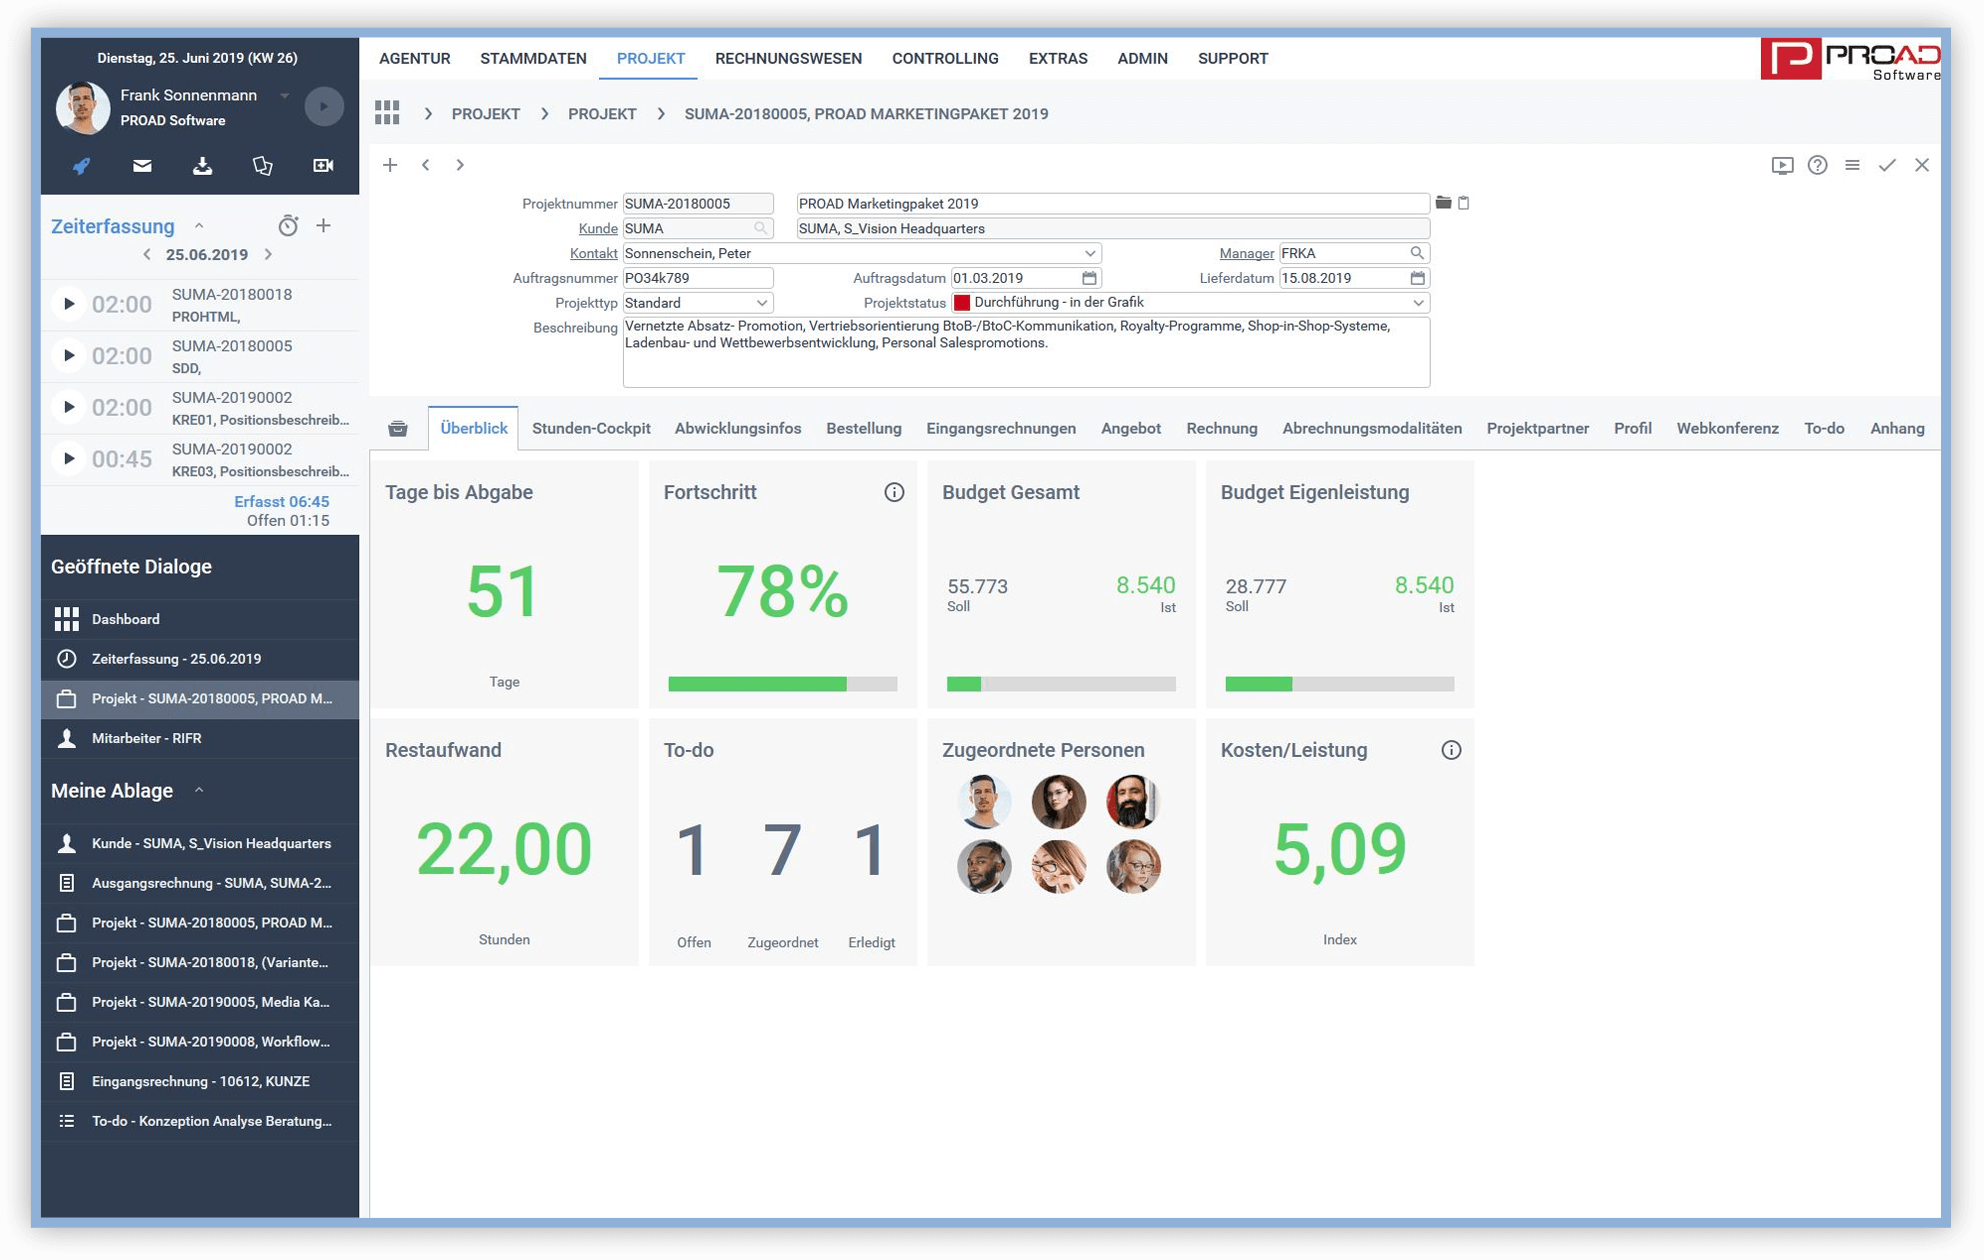 Screenshot PROAD Agentursoftware Dashboard Projektüberblick